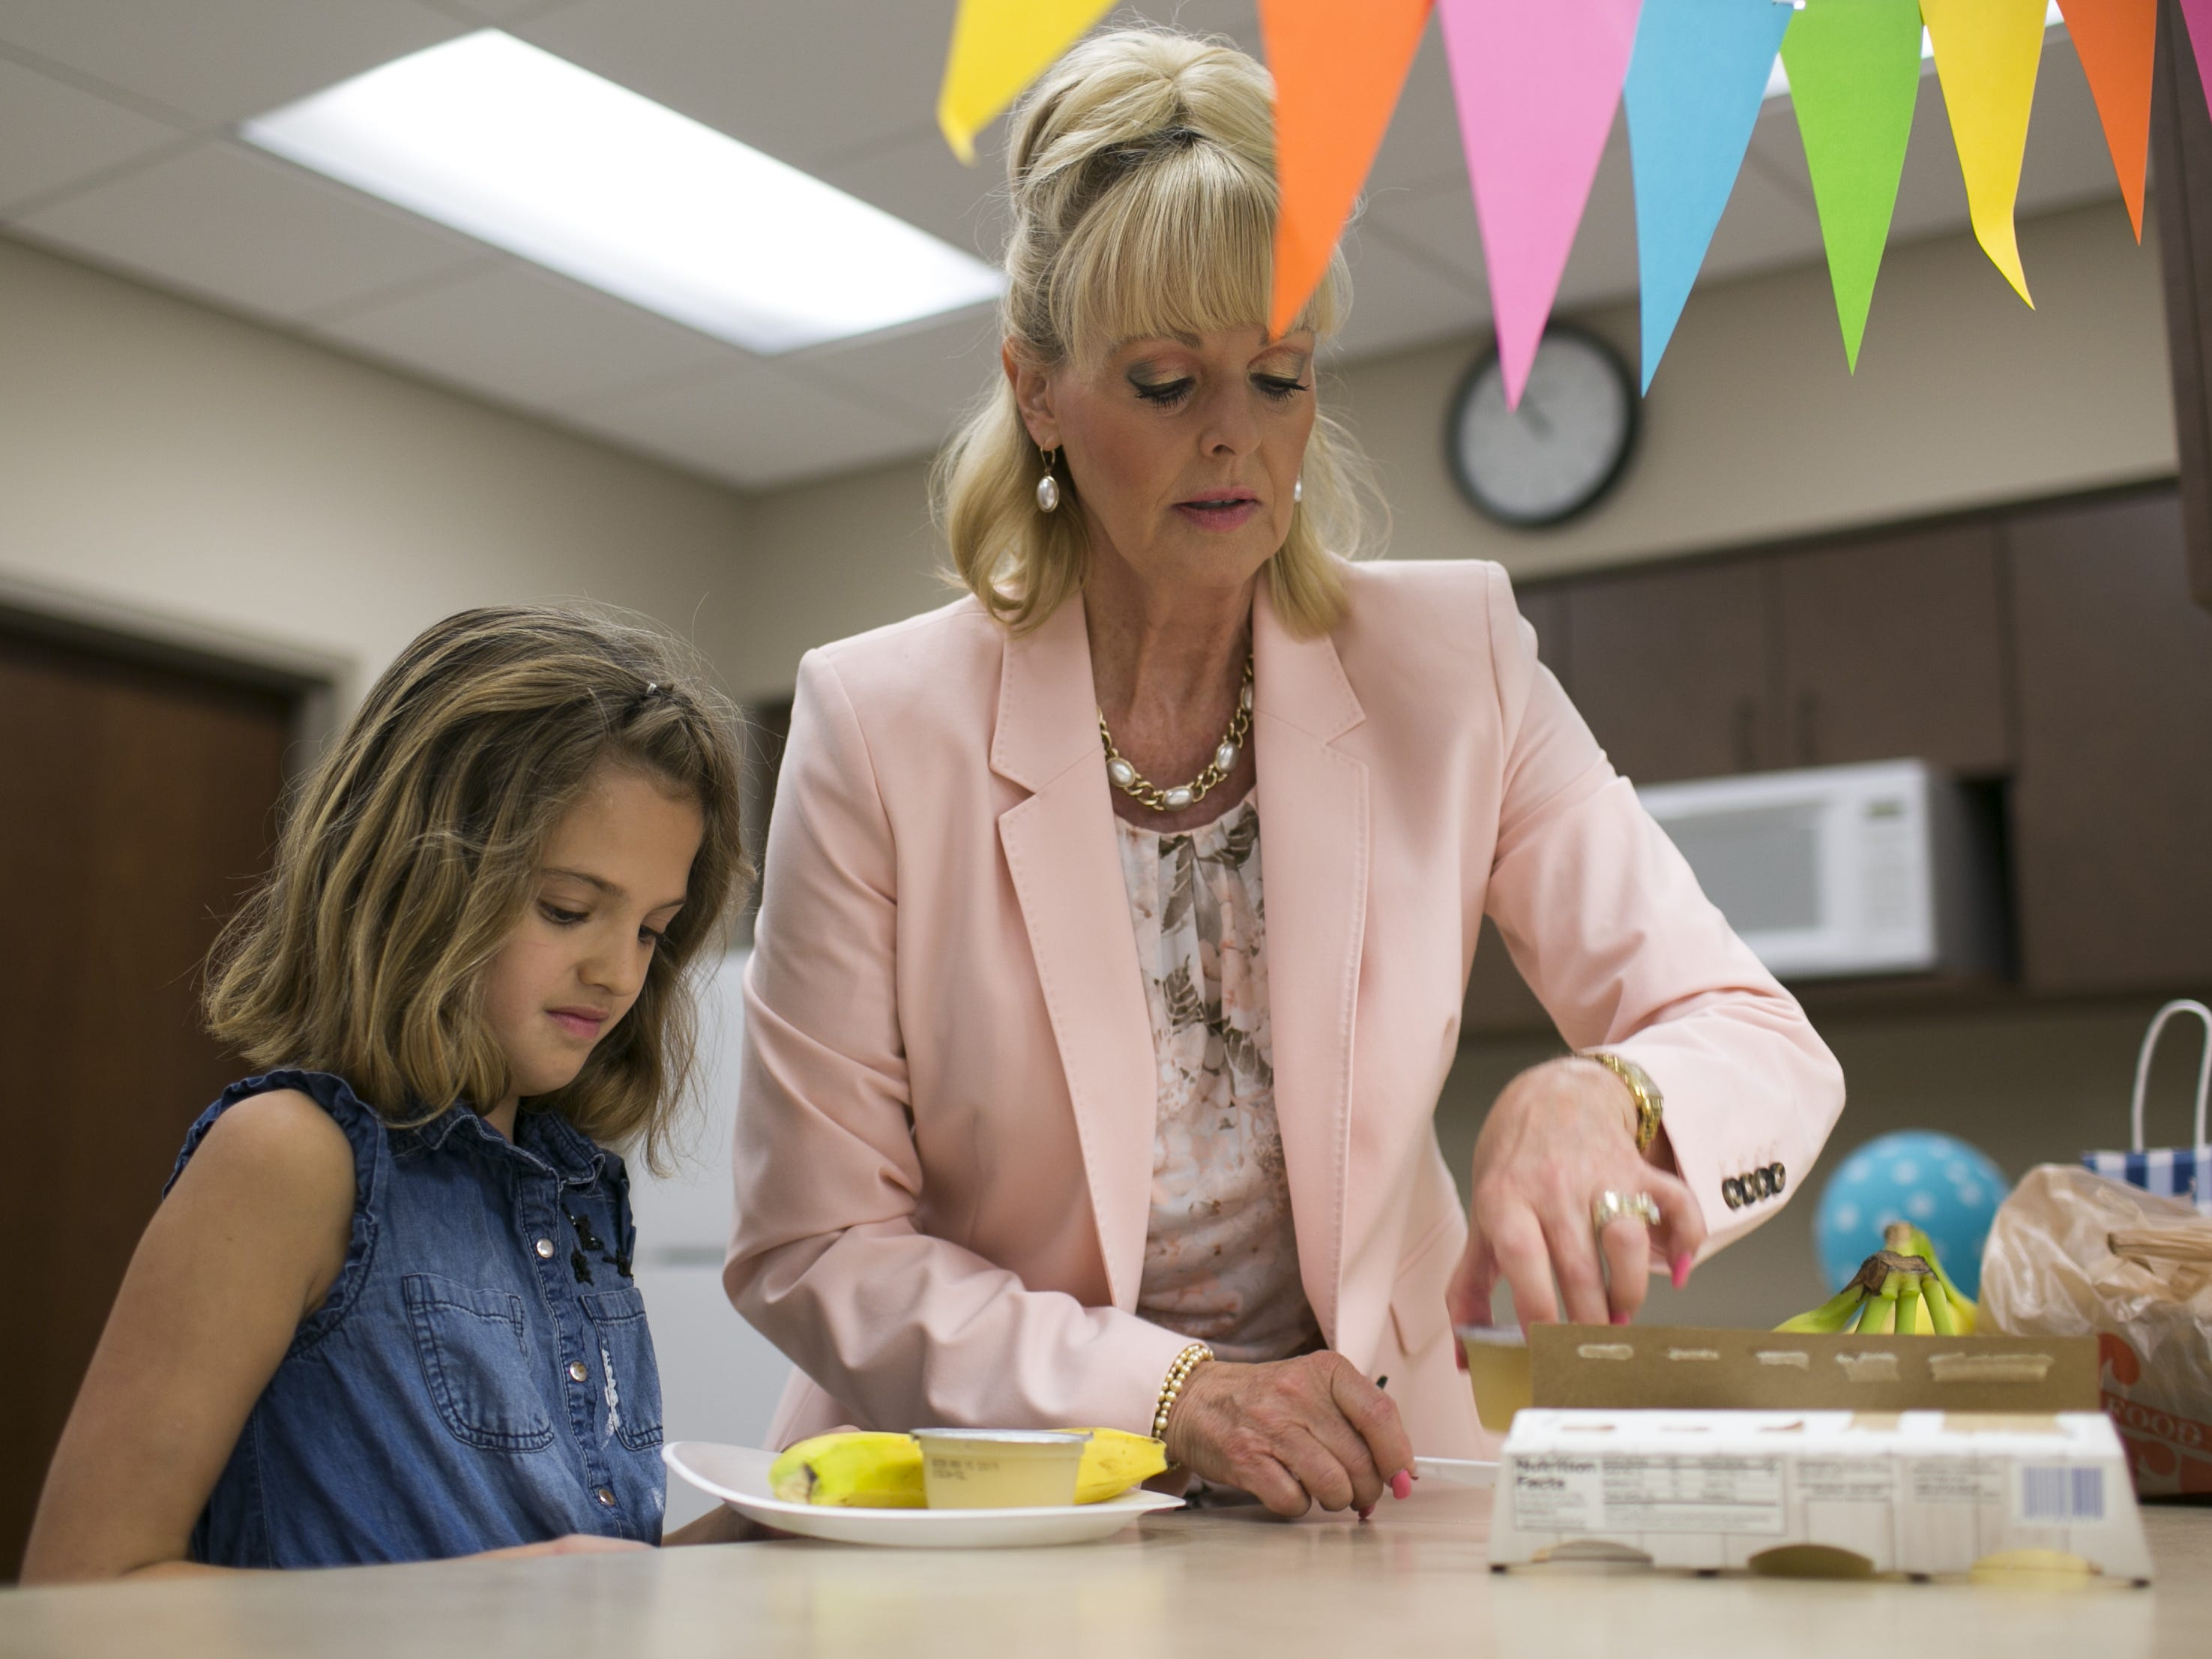 SueAnn Brown, right, teaches an etiquette class to kids ages 9-13 at the St. Bernard of Clairvaux Church in Scottsdale on July 20, 2018. Brown started the program with the aim to teach kids, adults and companies on proper manners and social etiquette.